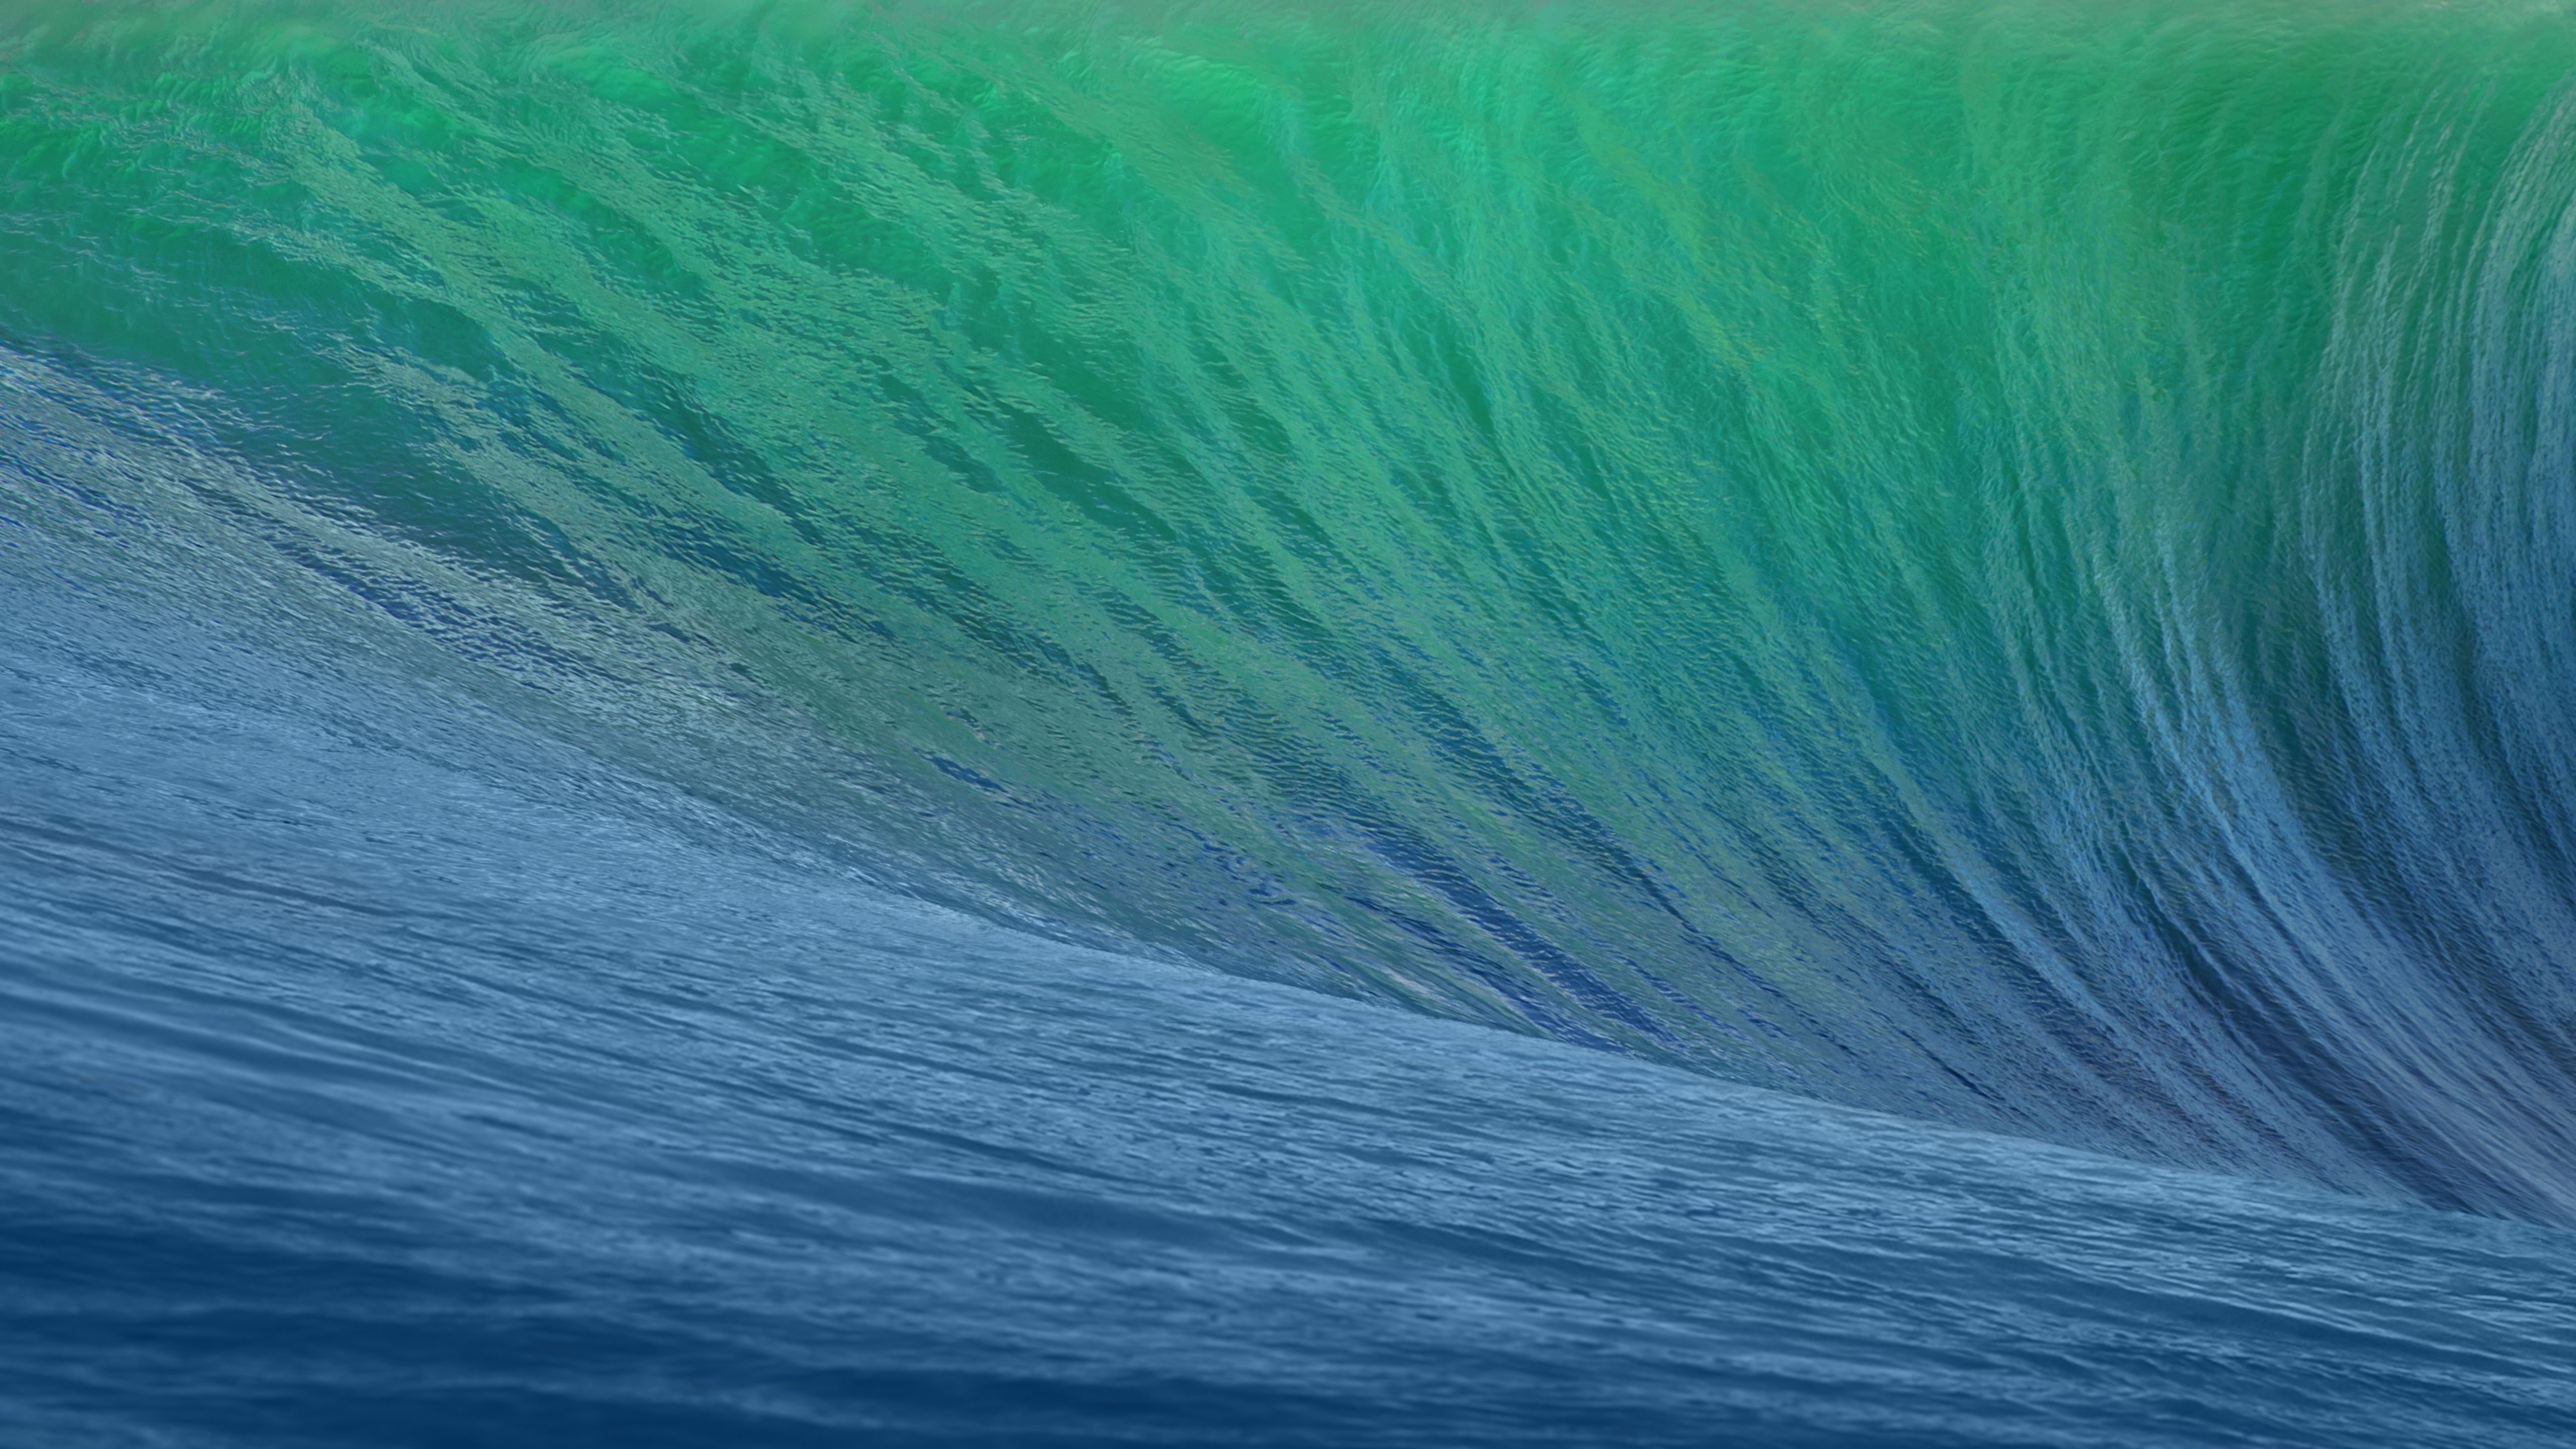 5120x2880 Every Default macOS Wallpaper – in Glorious 5K Resolution – 512 Pixels